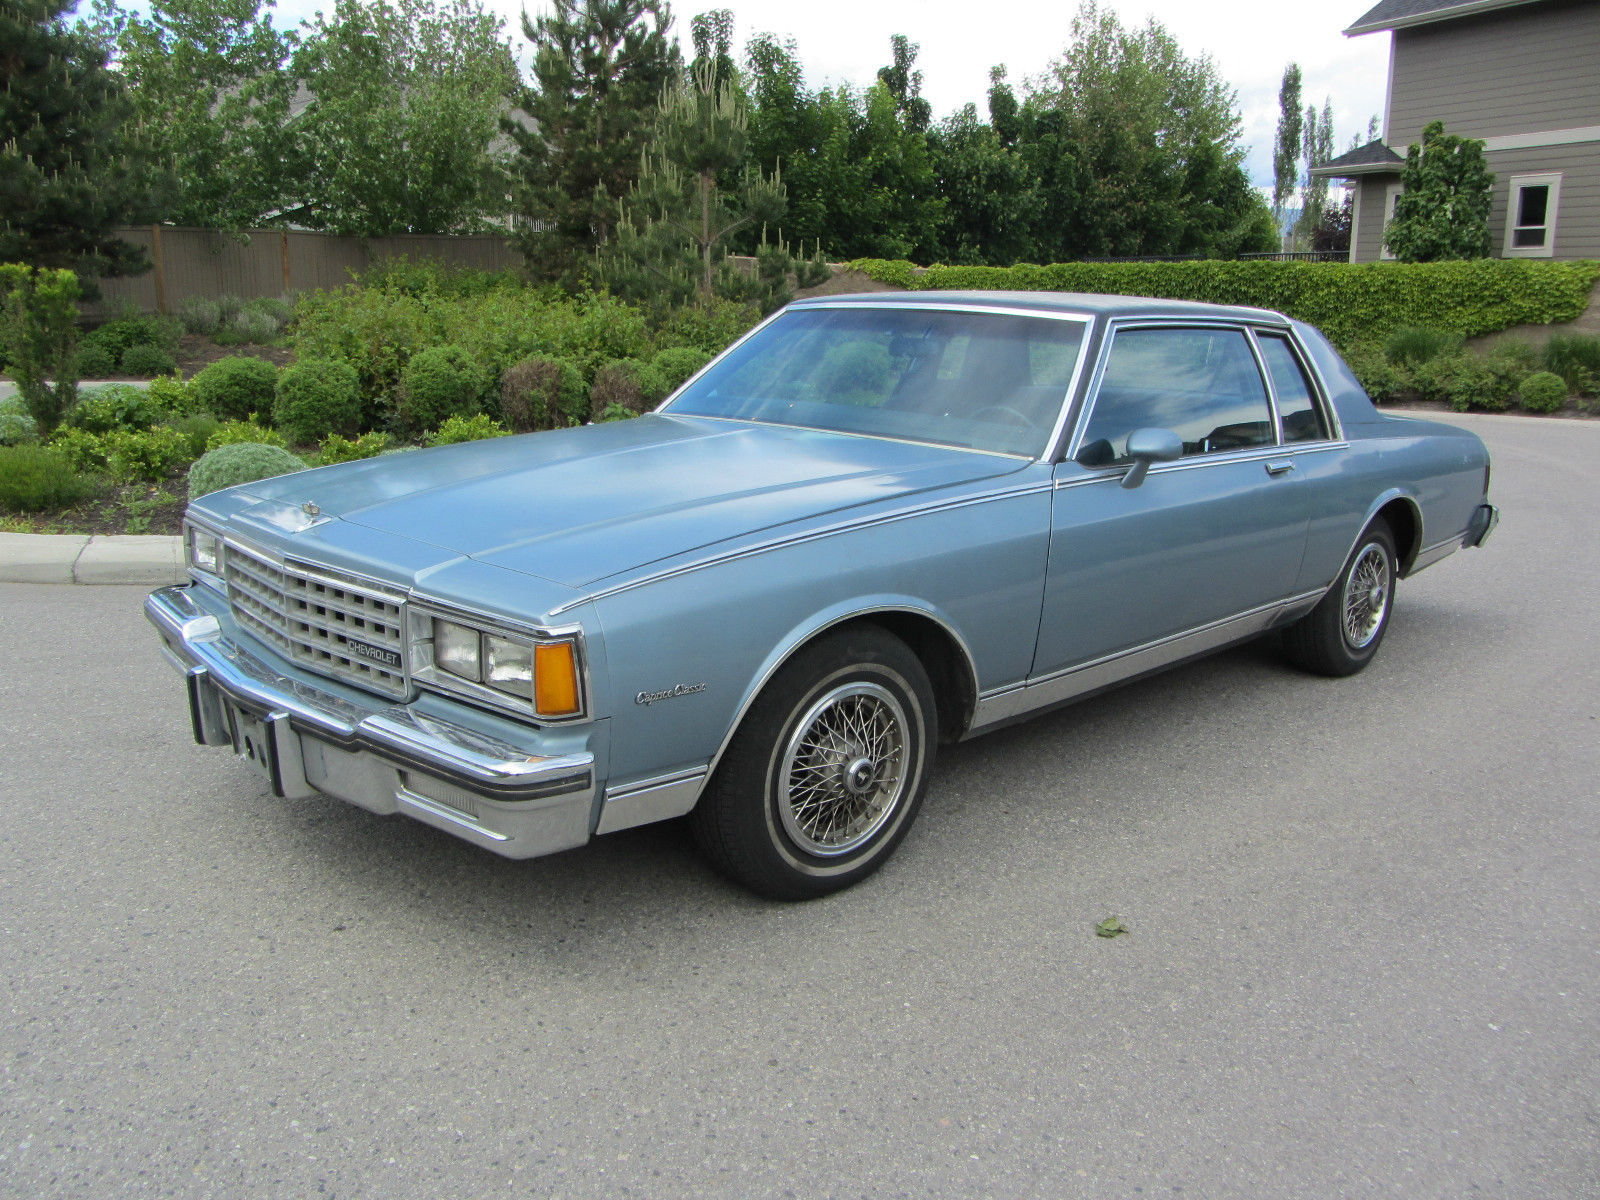 1985 chevrolet caprice 2 door landau coupe with low miles for sale in kelowna british columbia canada for sale photos technical specifications description classiccardb com